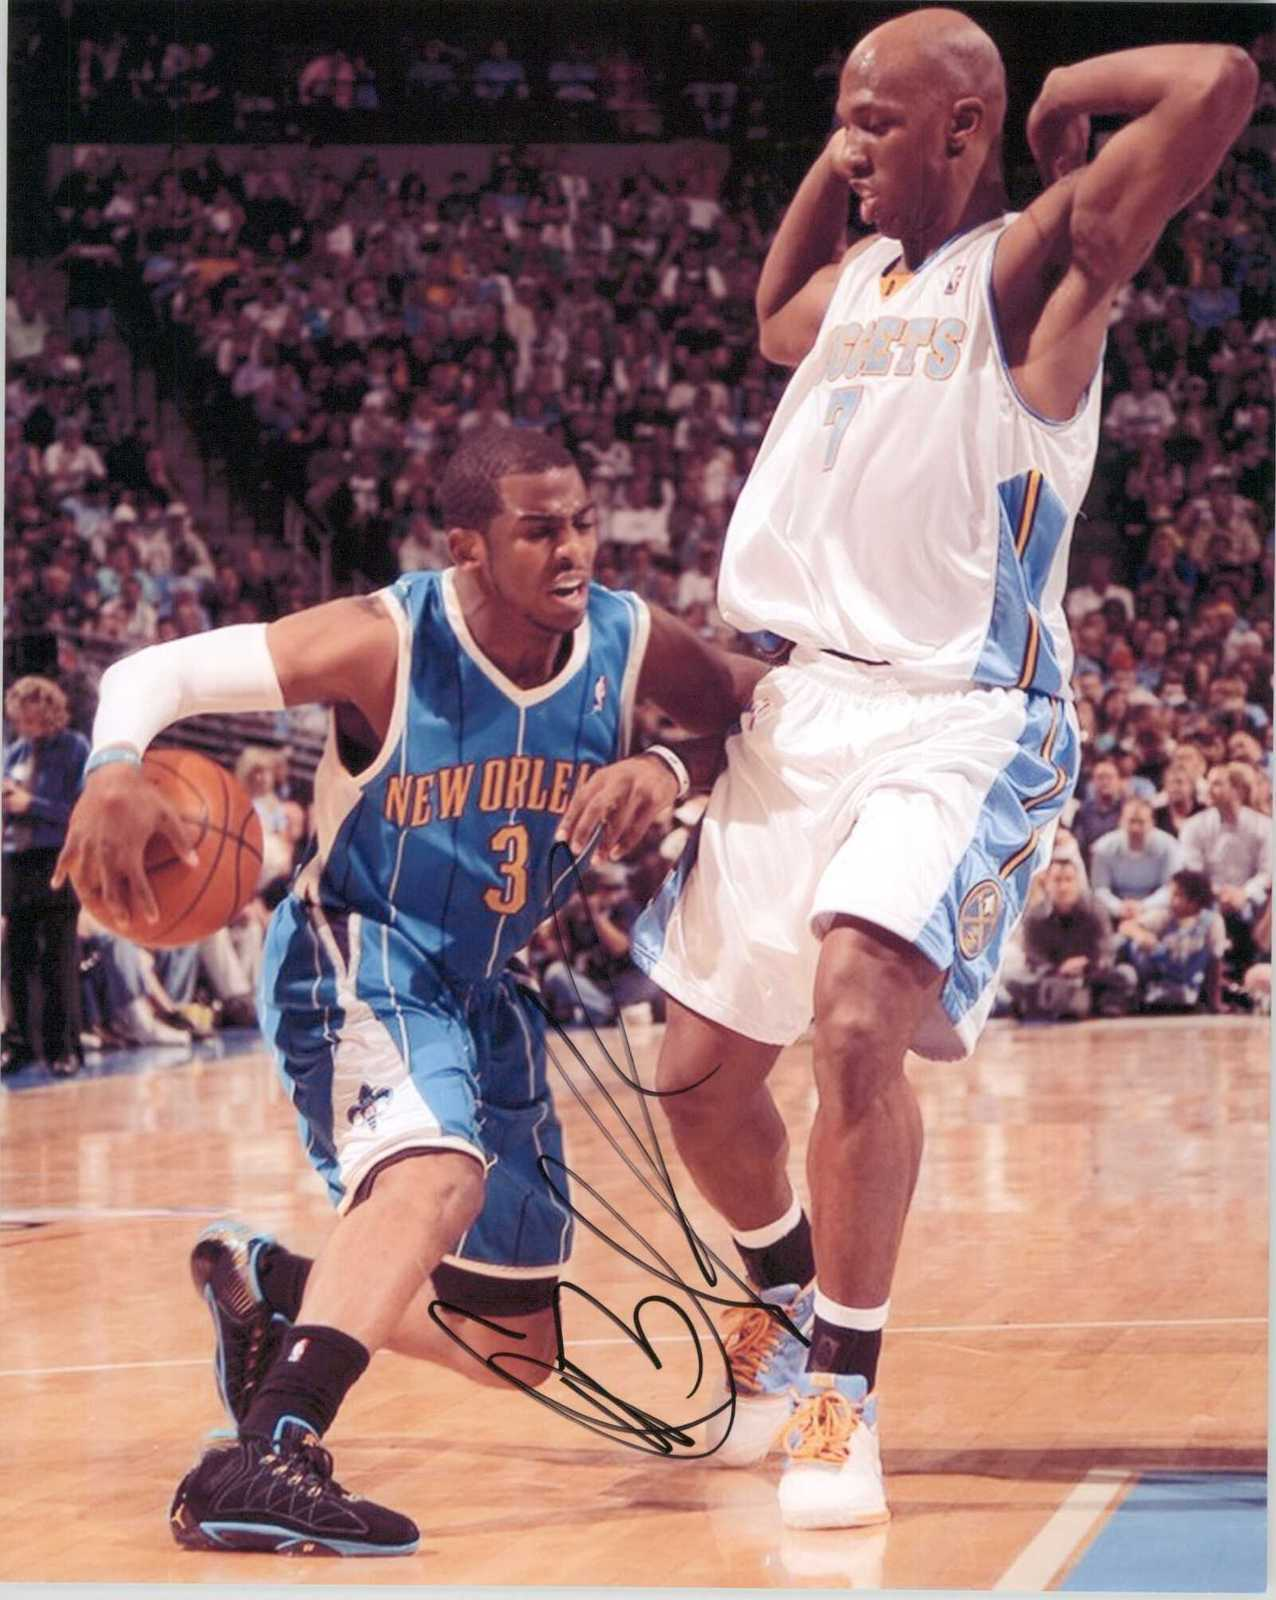 Primary image for Chris Paul Signed Autographed Glossy 8x10 Photo - New Orleans Hornets